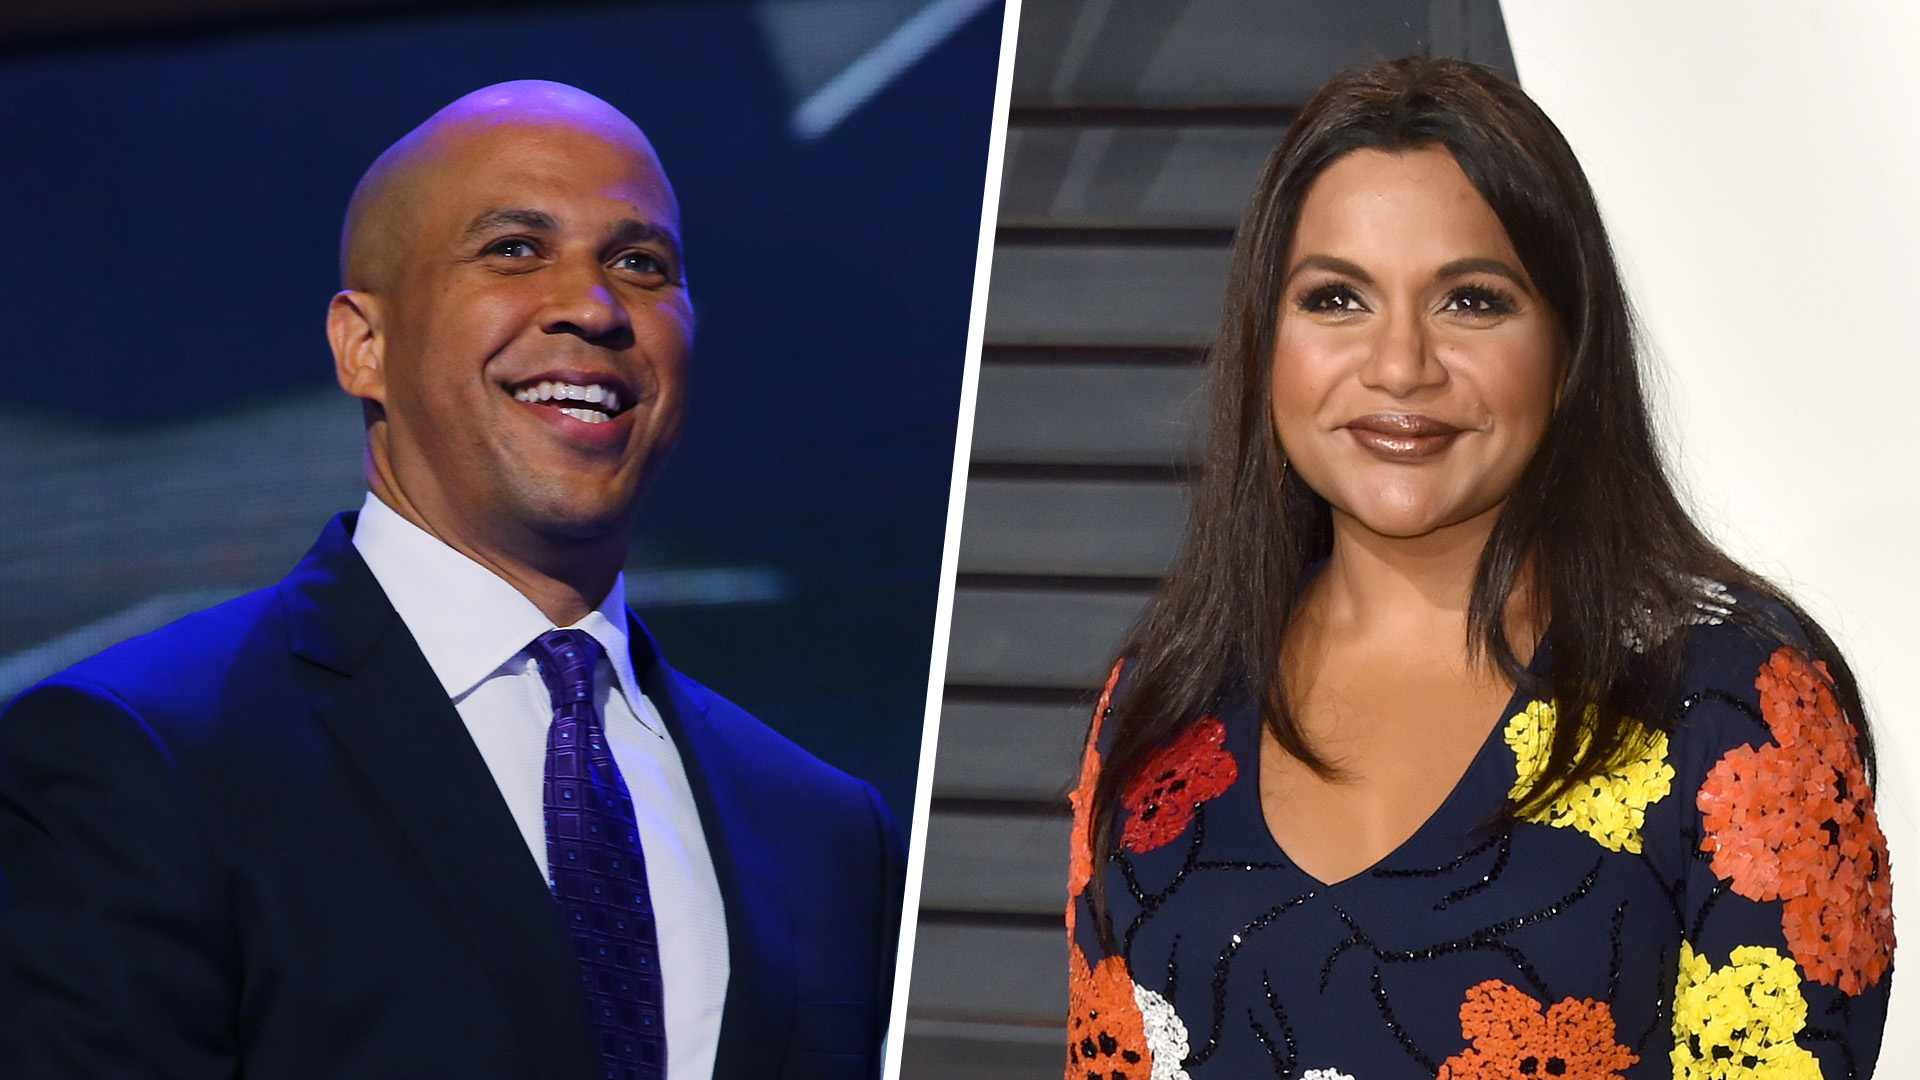 booker dating Cory booker, elected mayor of newark, new jersey, in 2006, came by his civil-rights activism at an early age his parents, cary and carolyn booker,.